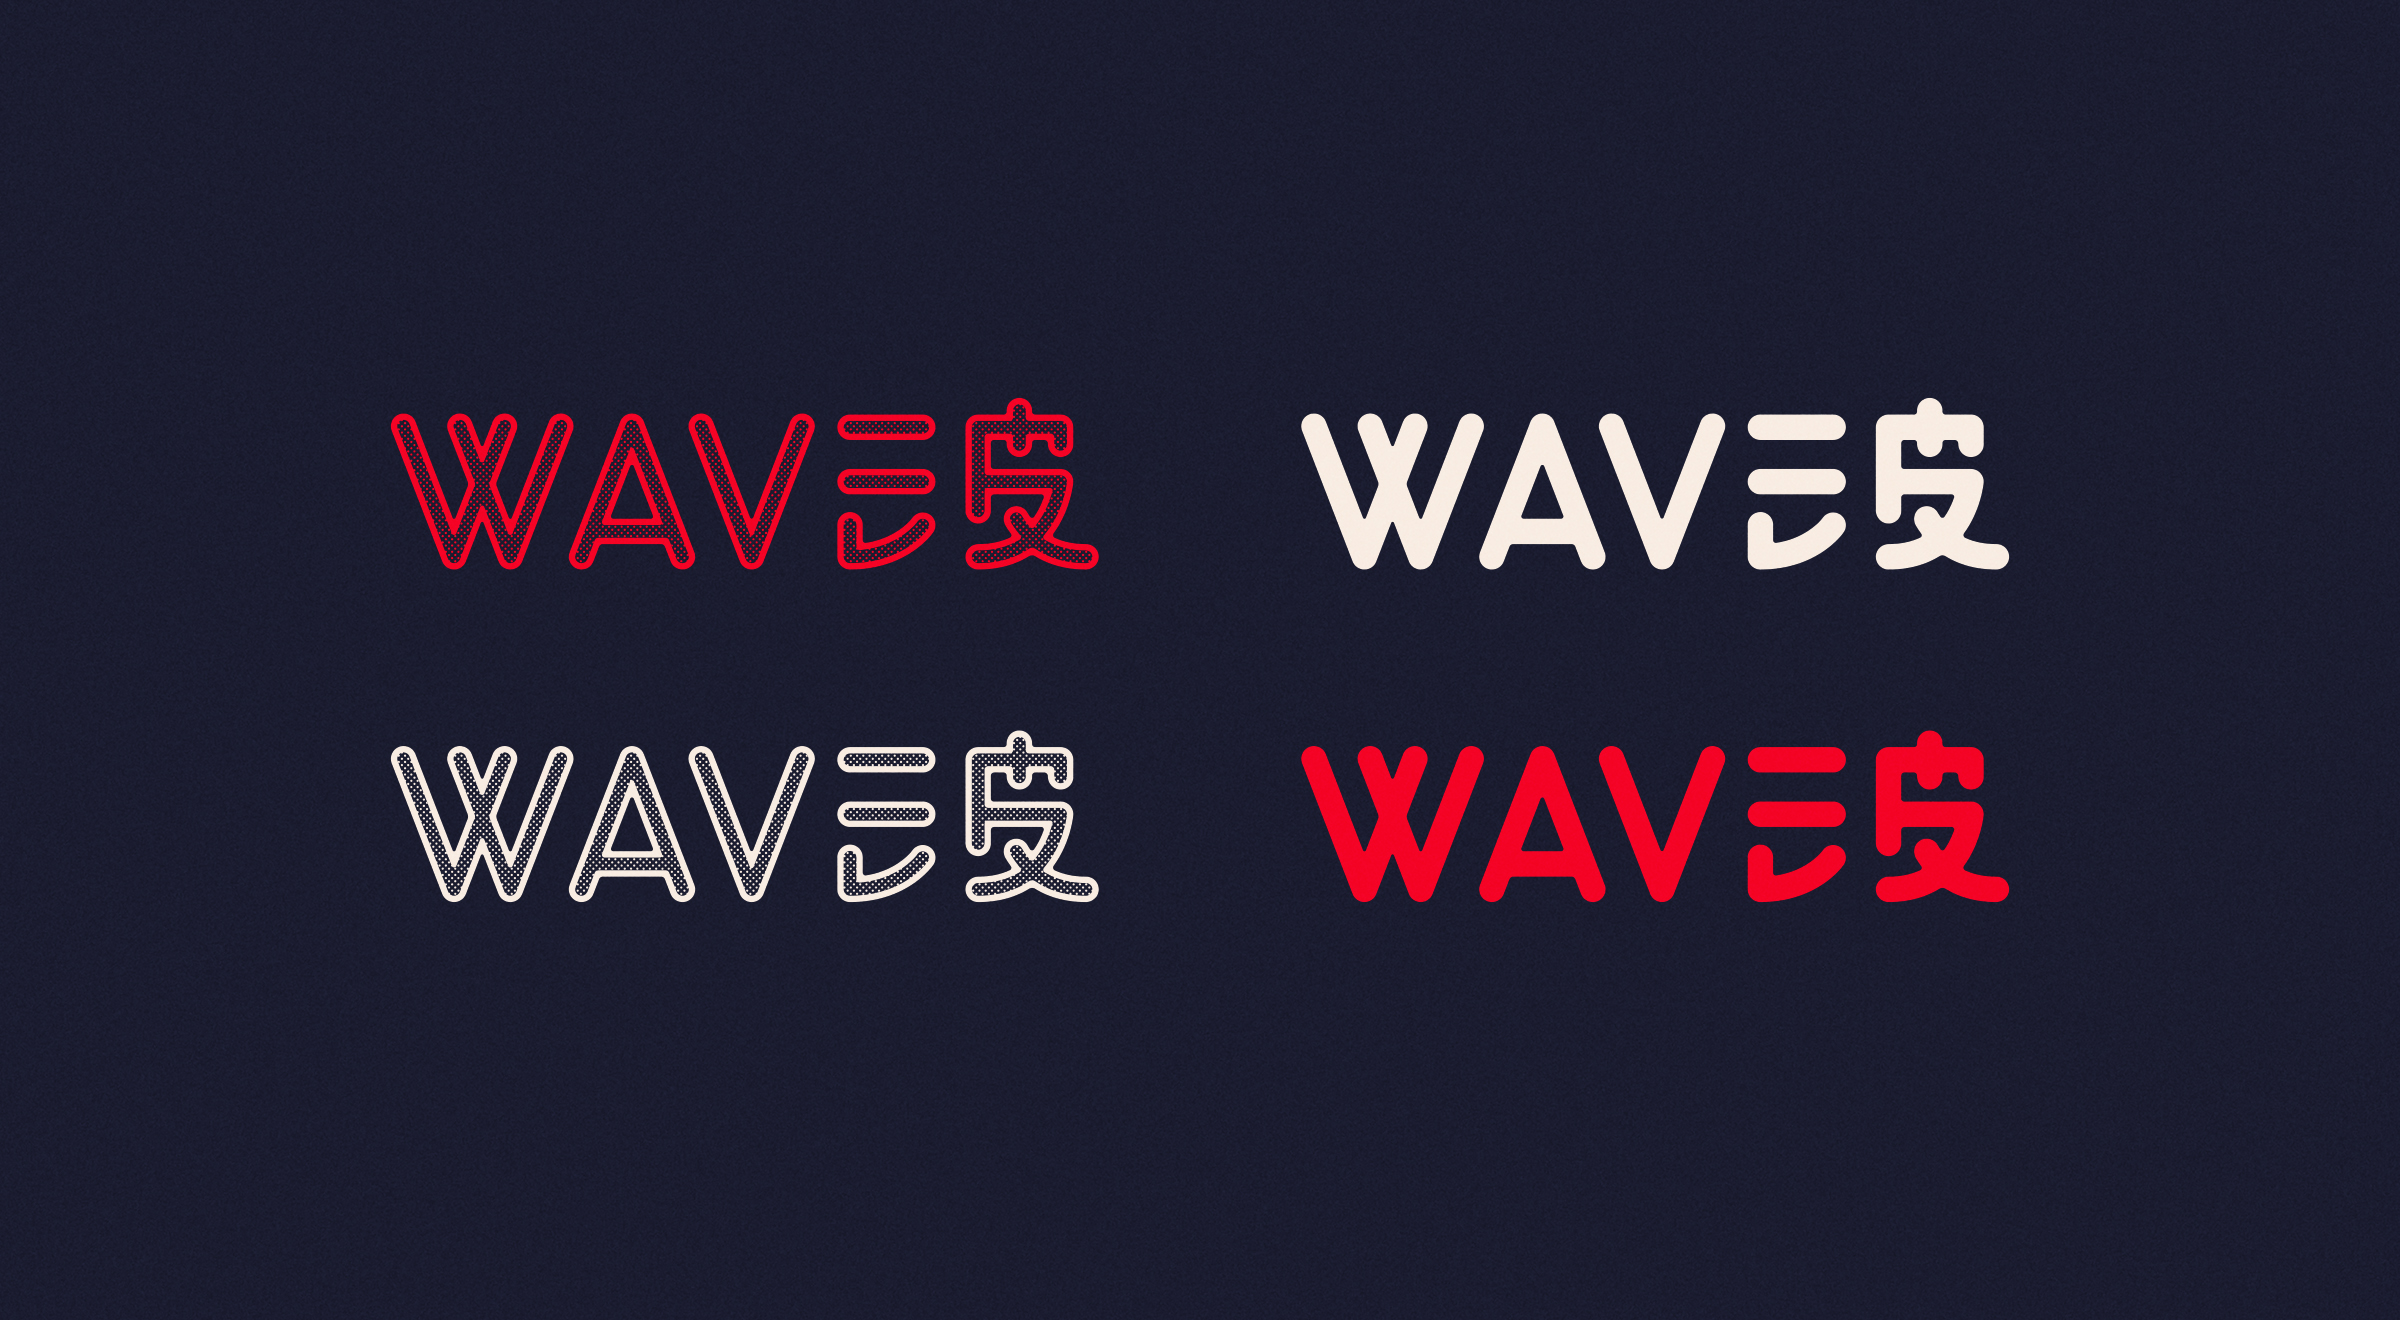 TBS_Waves_Wordmark_1